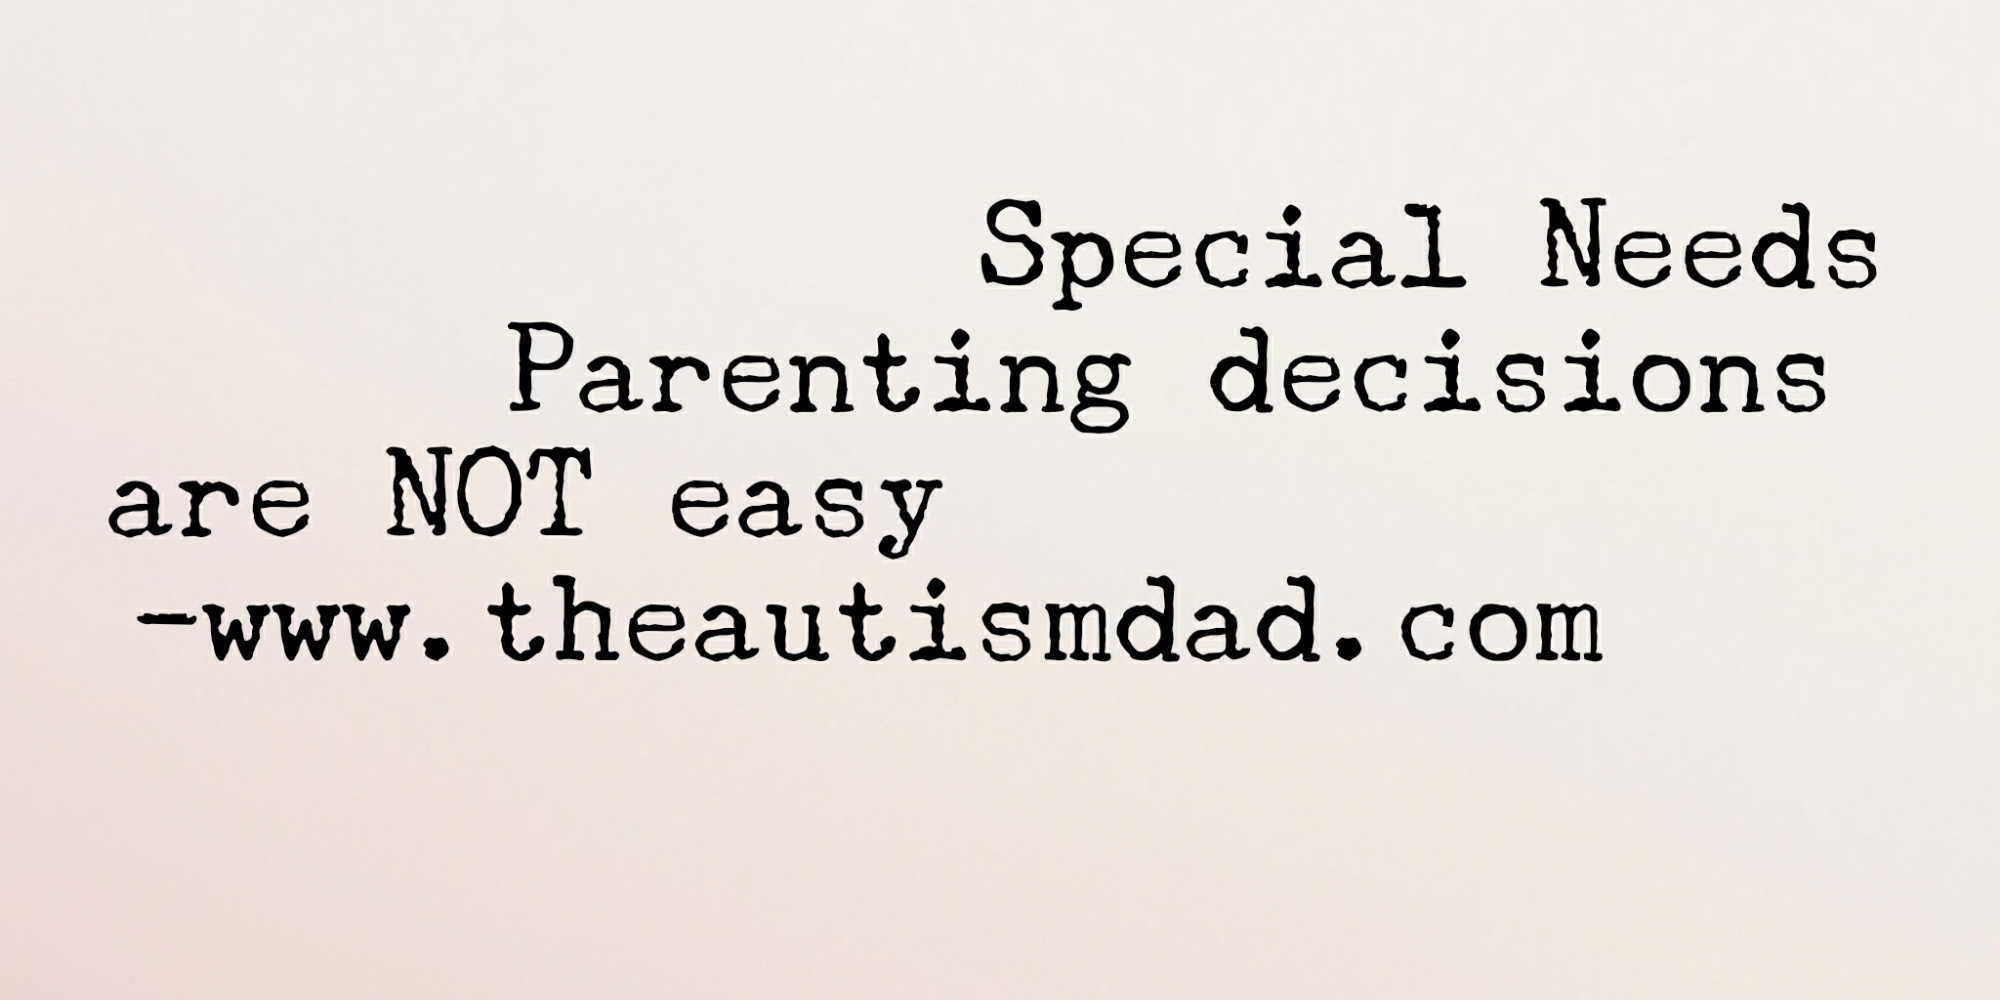 Special Needs Parenting decisions are NOT easy